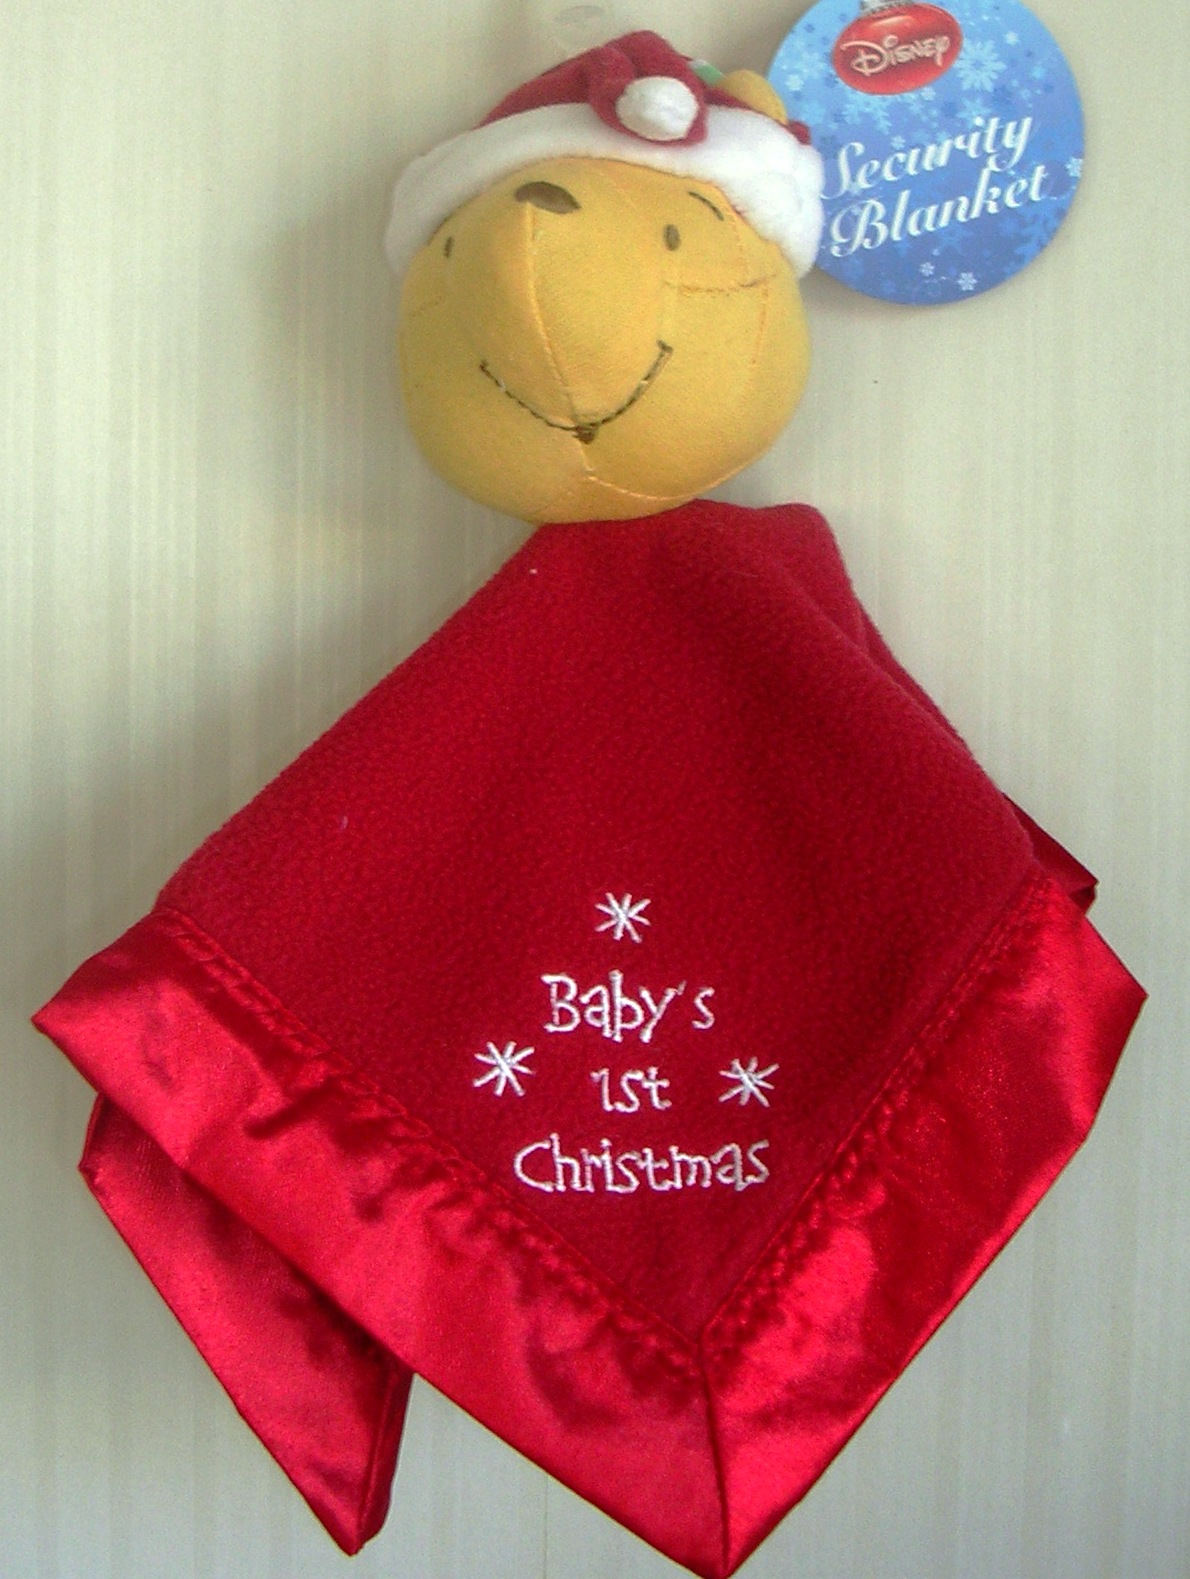 Winnie The Pooh Security Blanket Baby's First Christmas